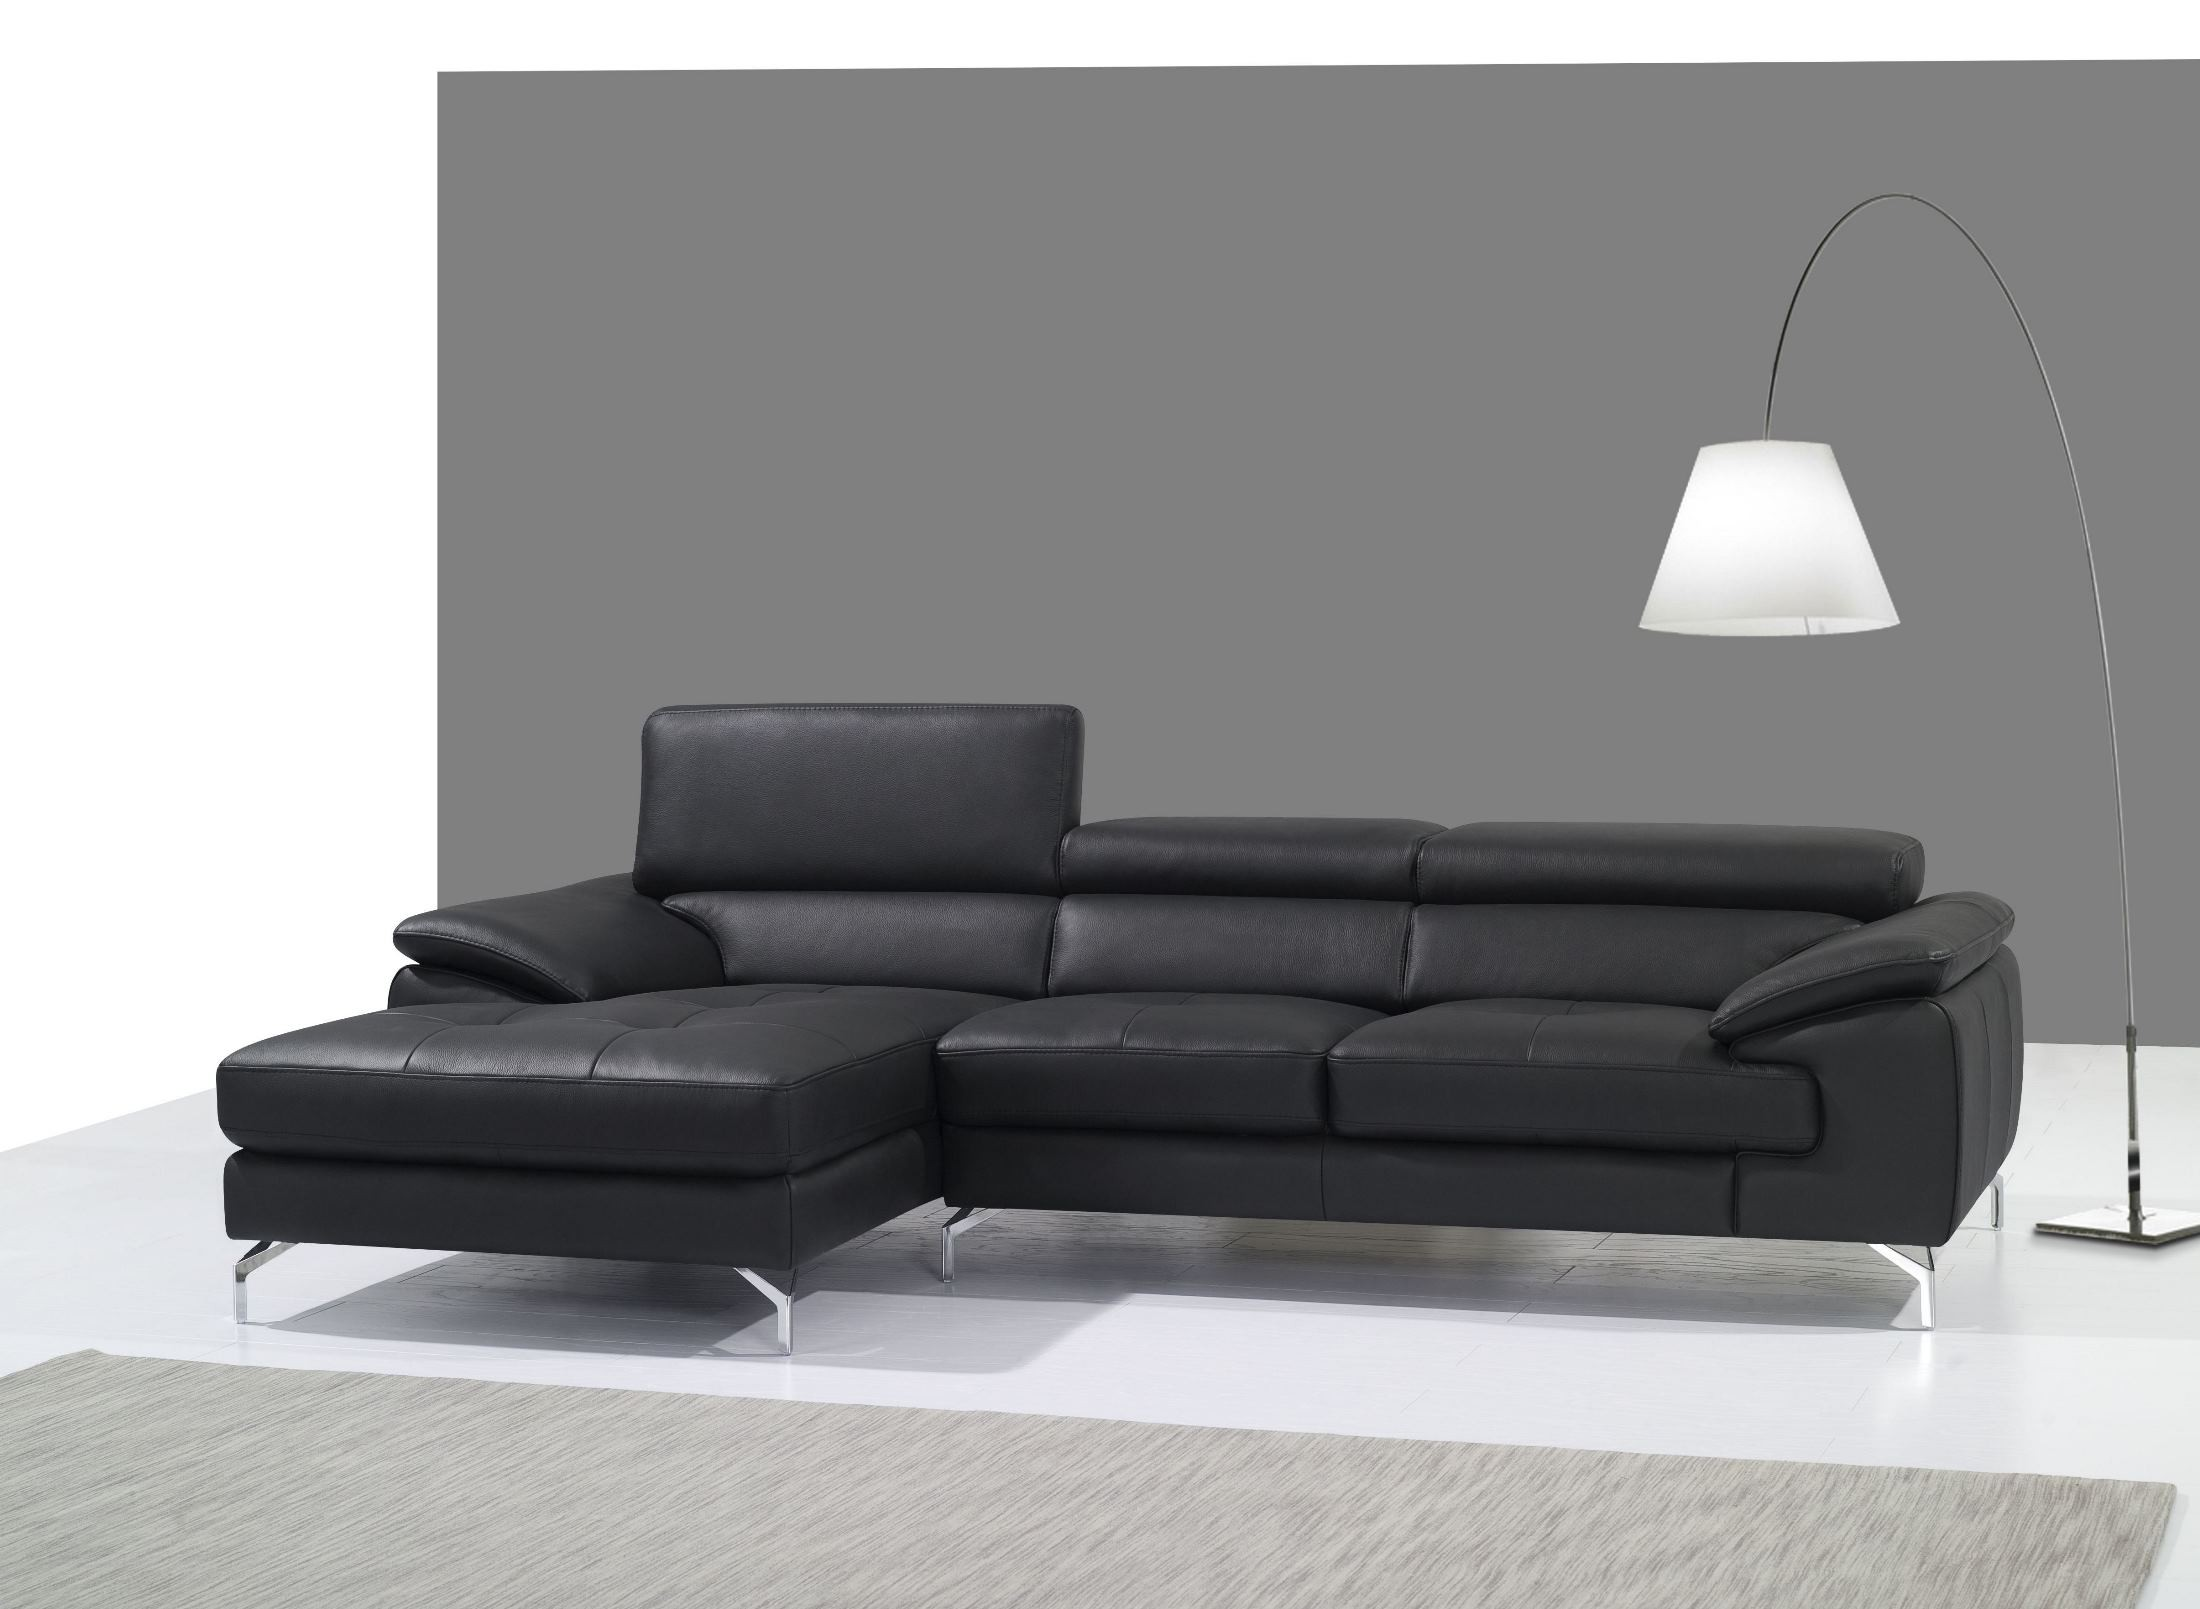 A973b black italian leather mini laf chaise sectional from for Black leather sofa chaise